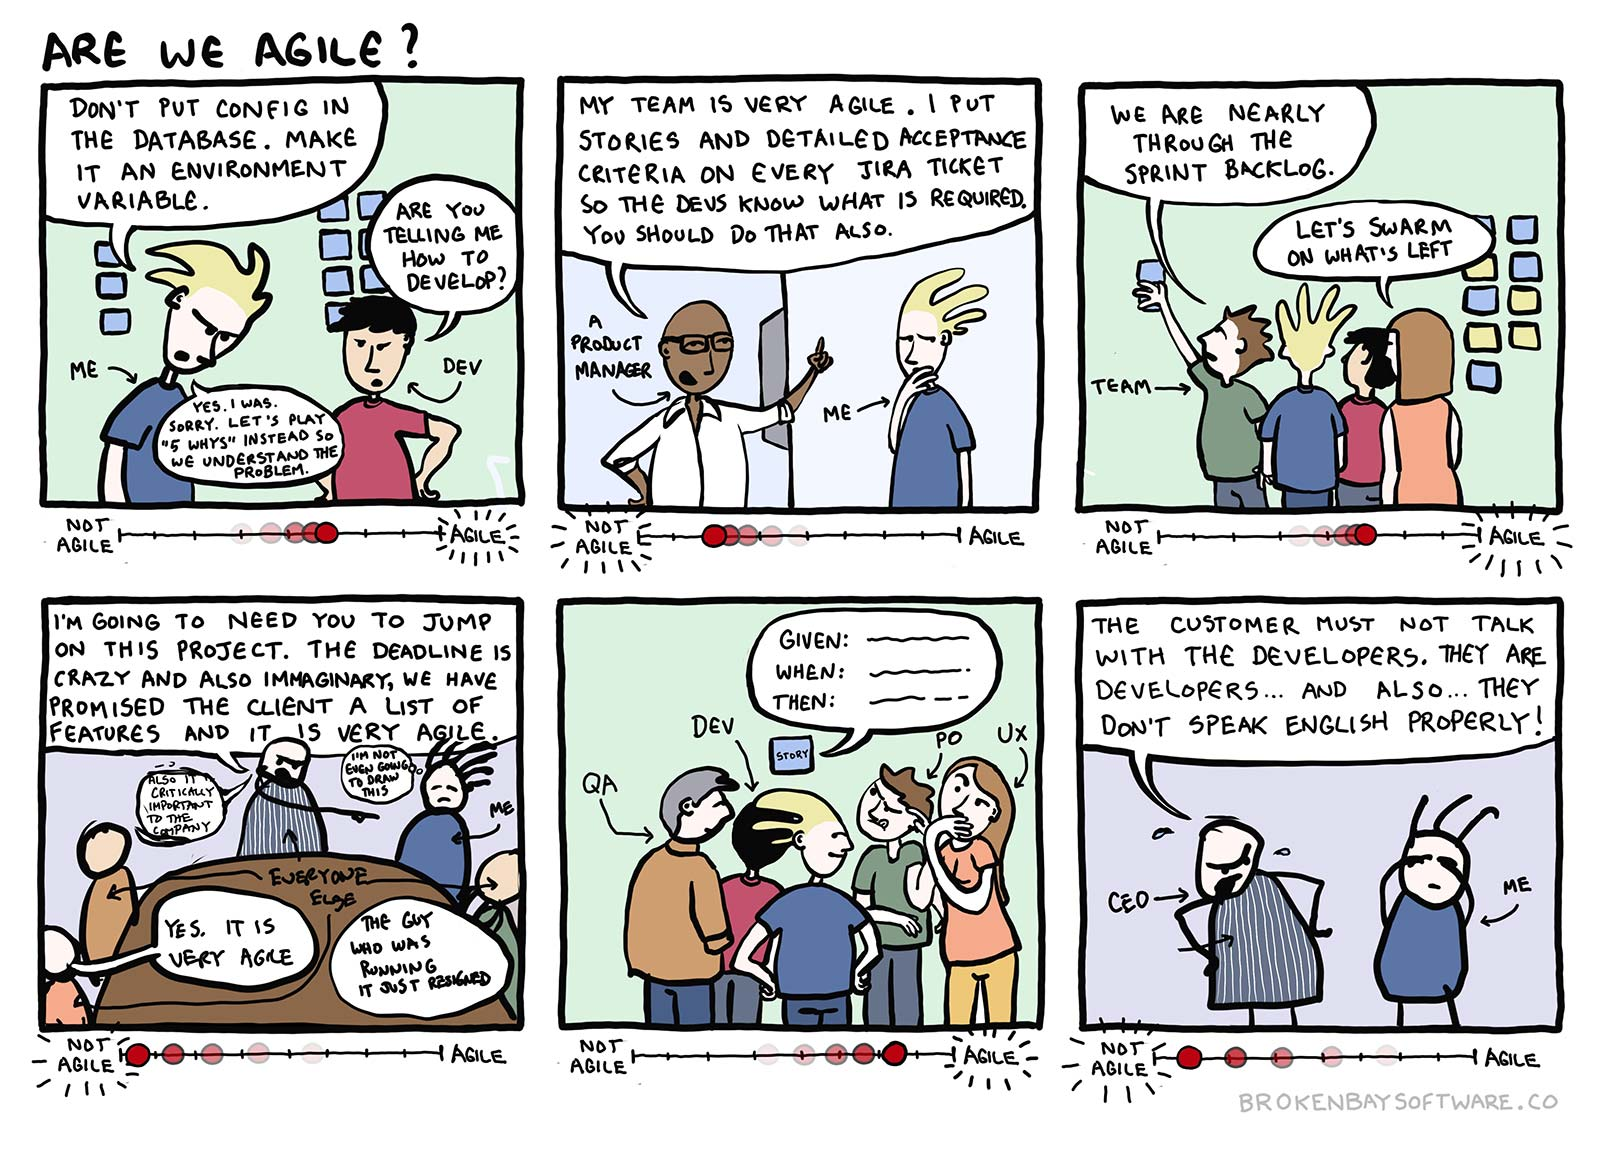 Are We Agile?